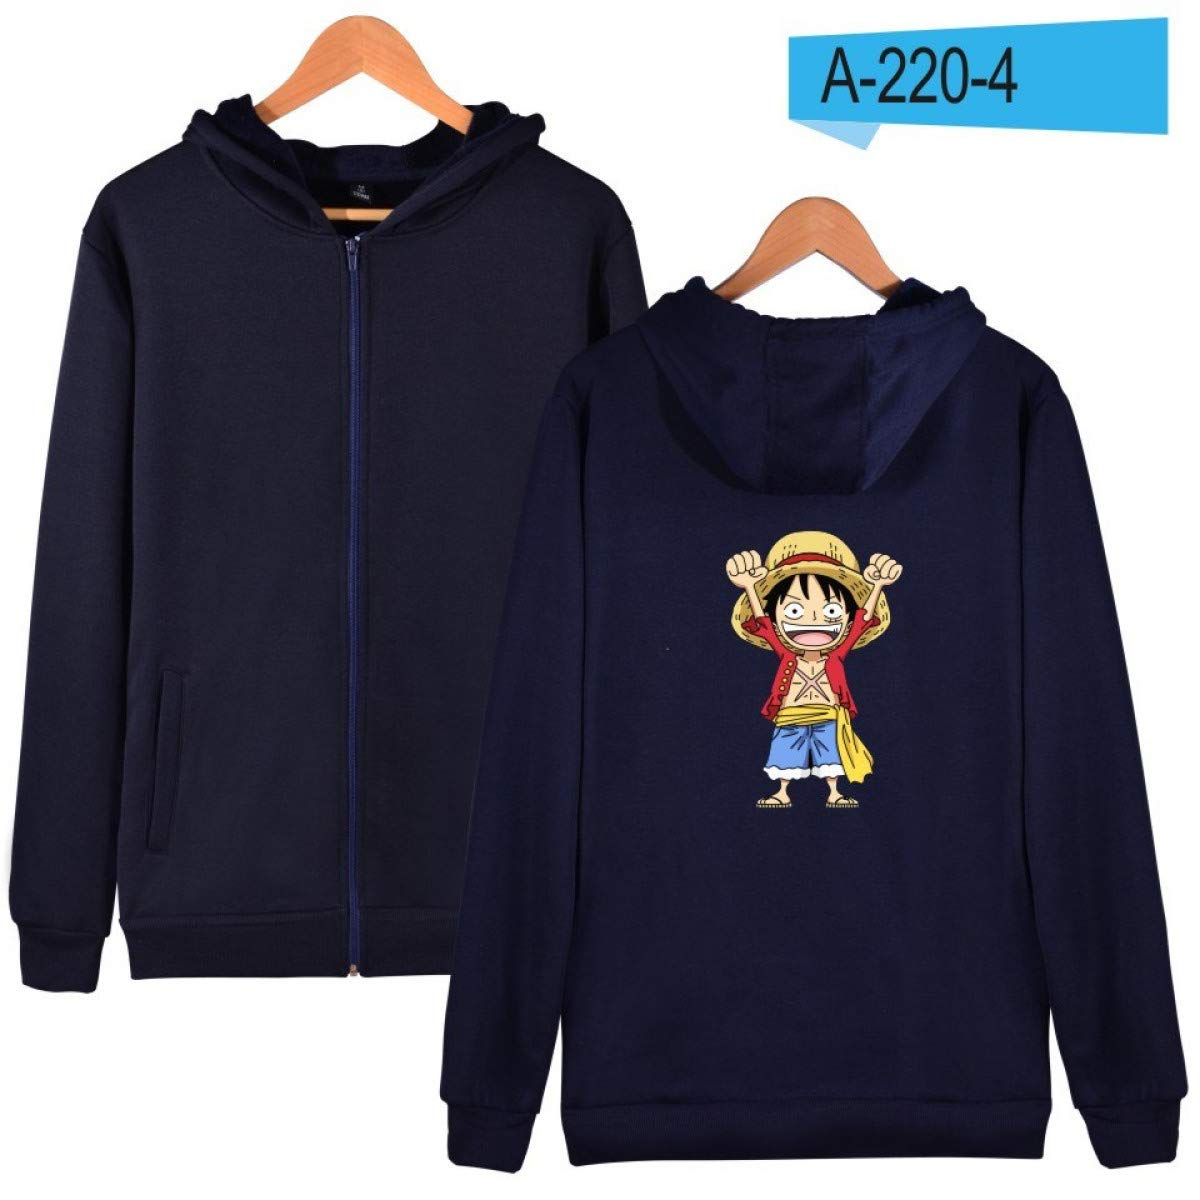 Amazon.com: FLAMINGO_STORE Mens Hoodies Sweatshirts Cartoon Coat Anime Hoodies Mens Zipper Luffy Clothes: Clothing